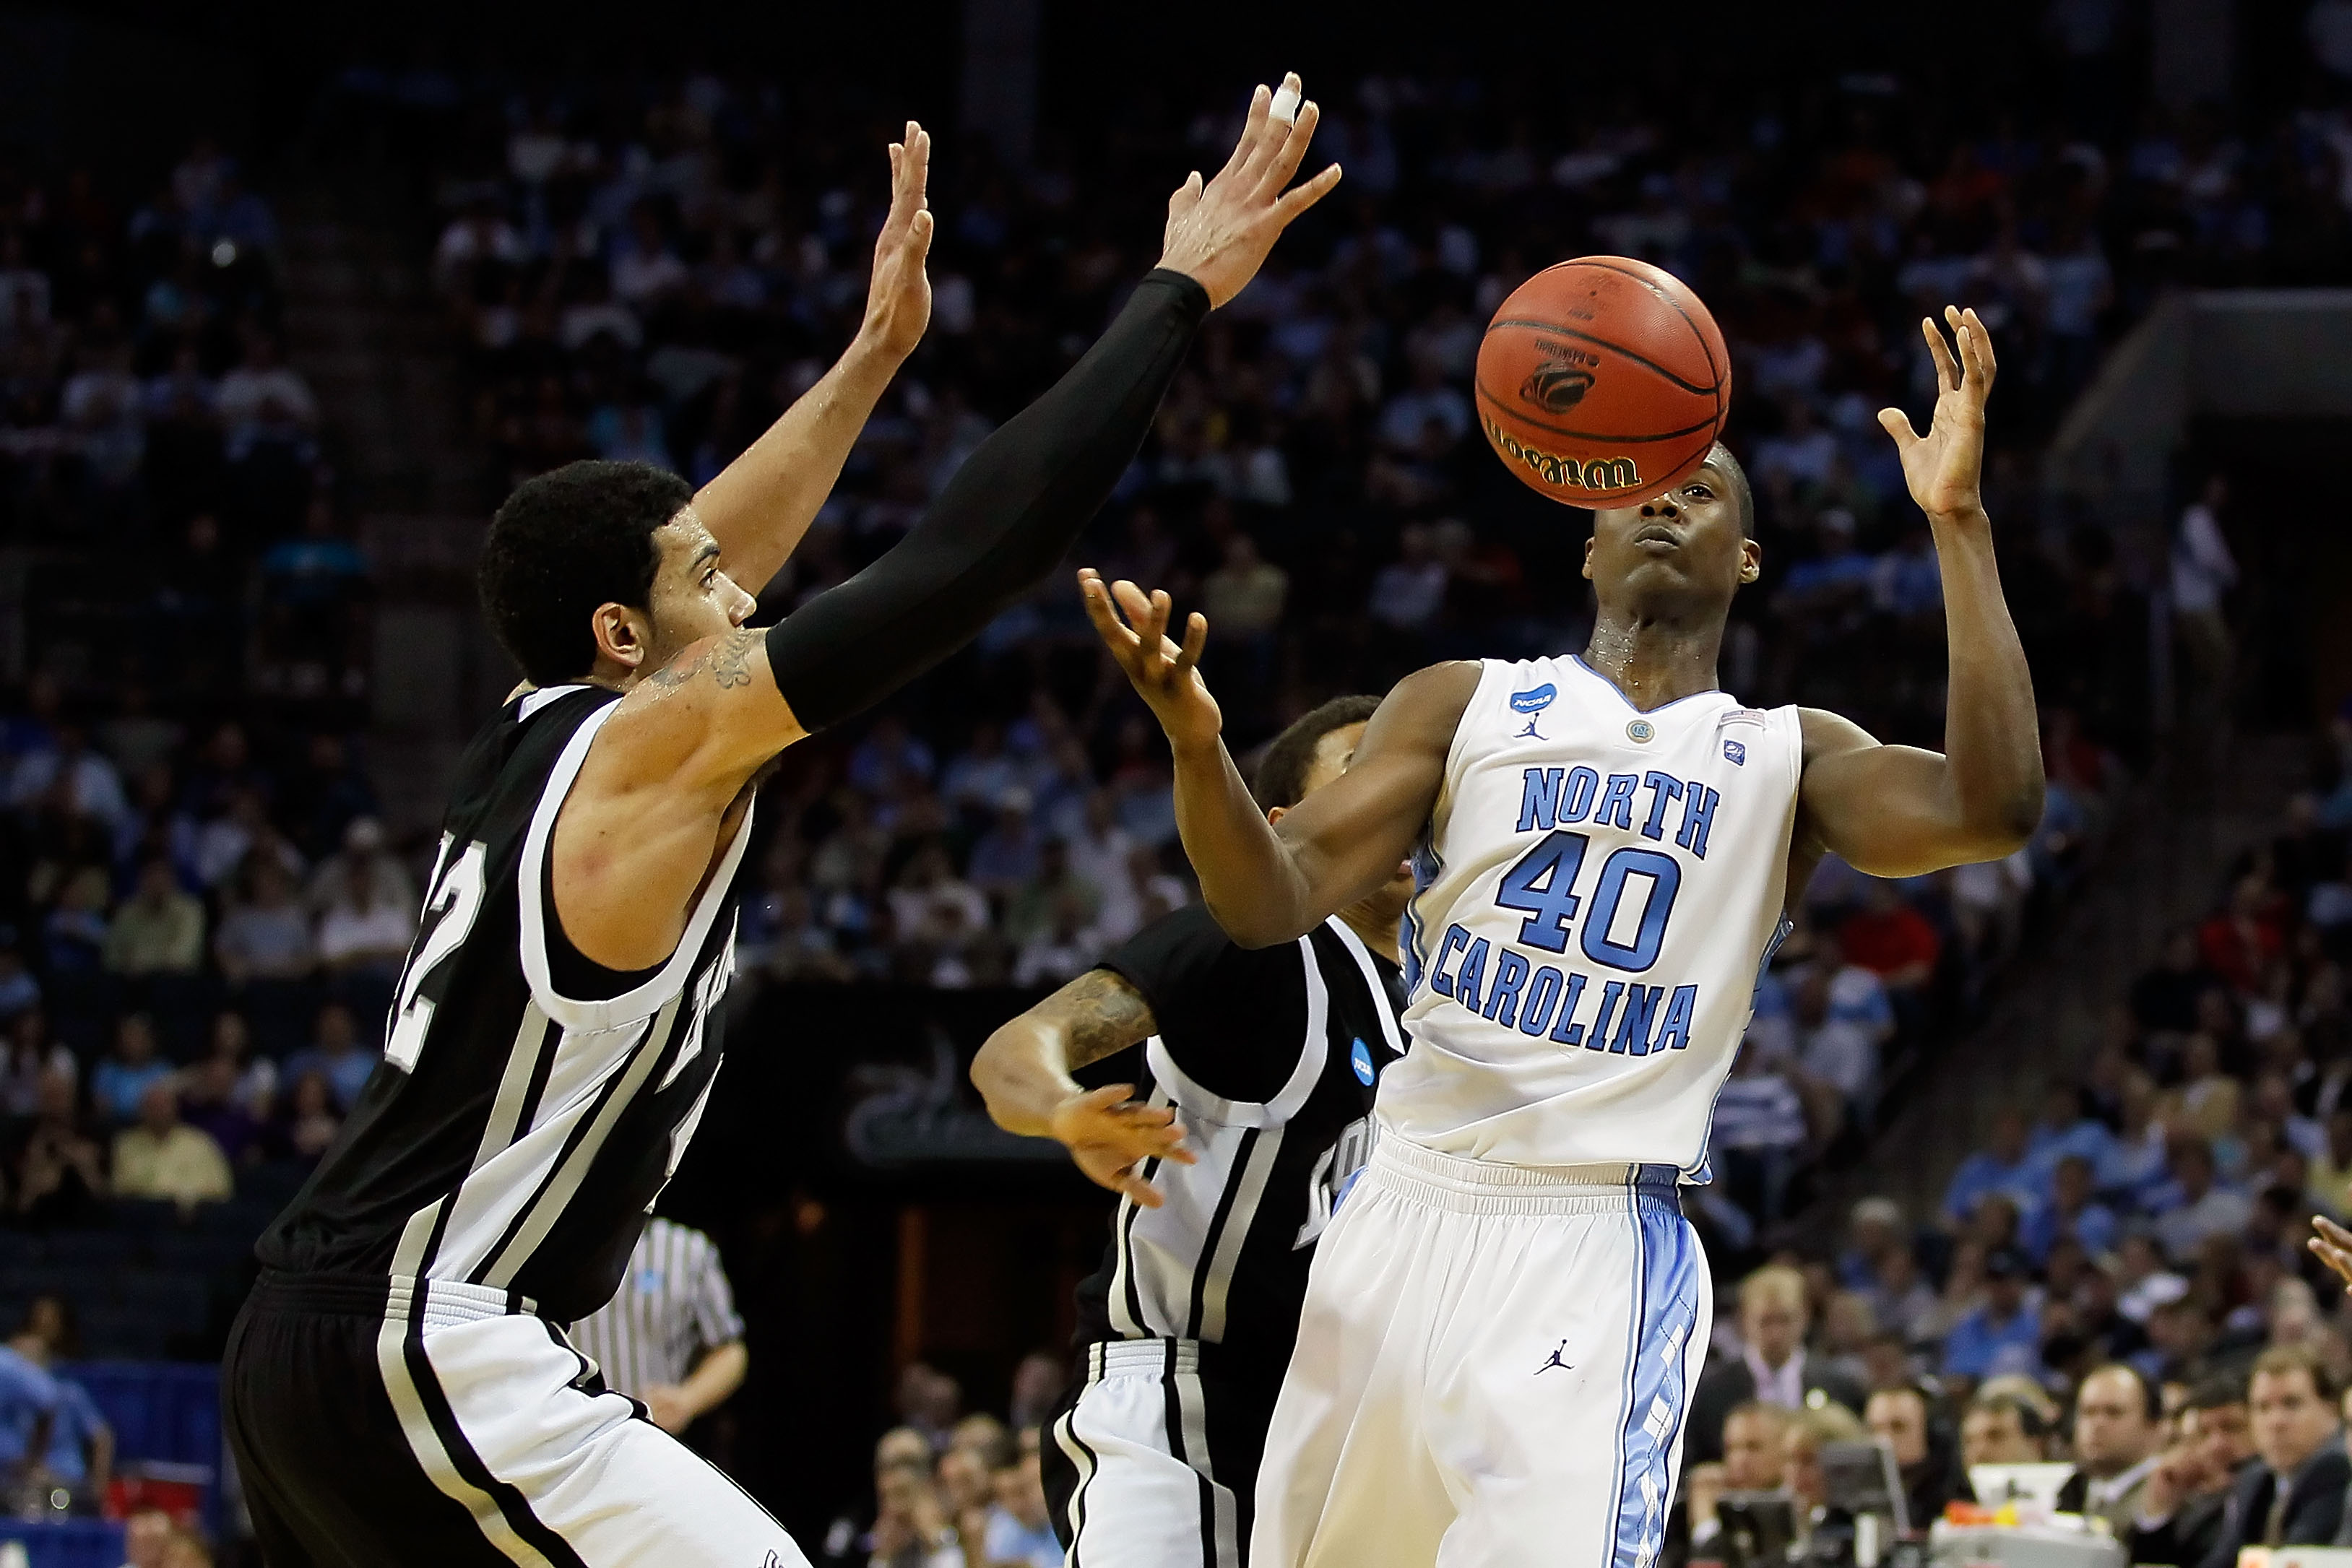 CHARLOTTE, NC - MARCH 18:  Harrison Barnes #40 of the North Carolina Tar Heels looses the ball alongside Julian Boyd #42 of the Long Island Blackbirds in the second half during the second round of the 2011 NCAA men's basketball tournament at Time Warner C